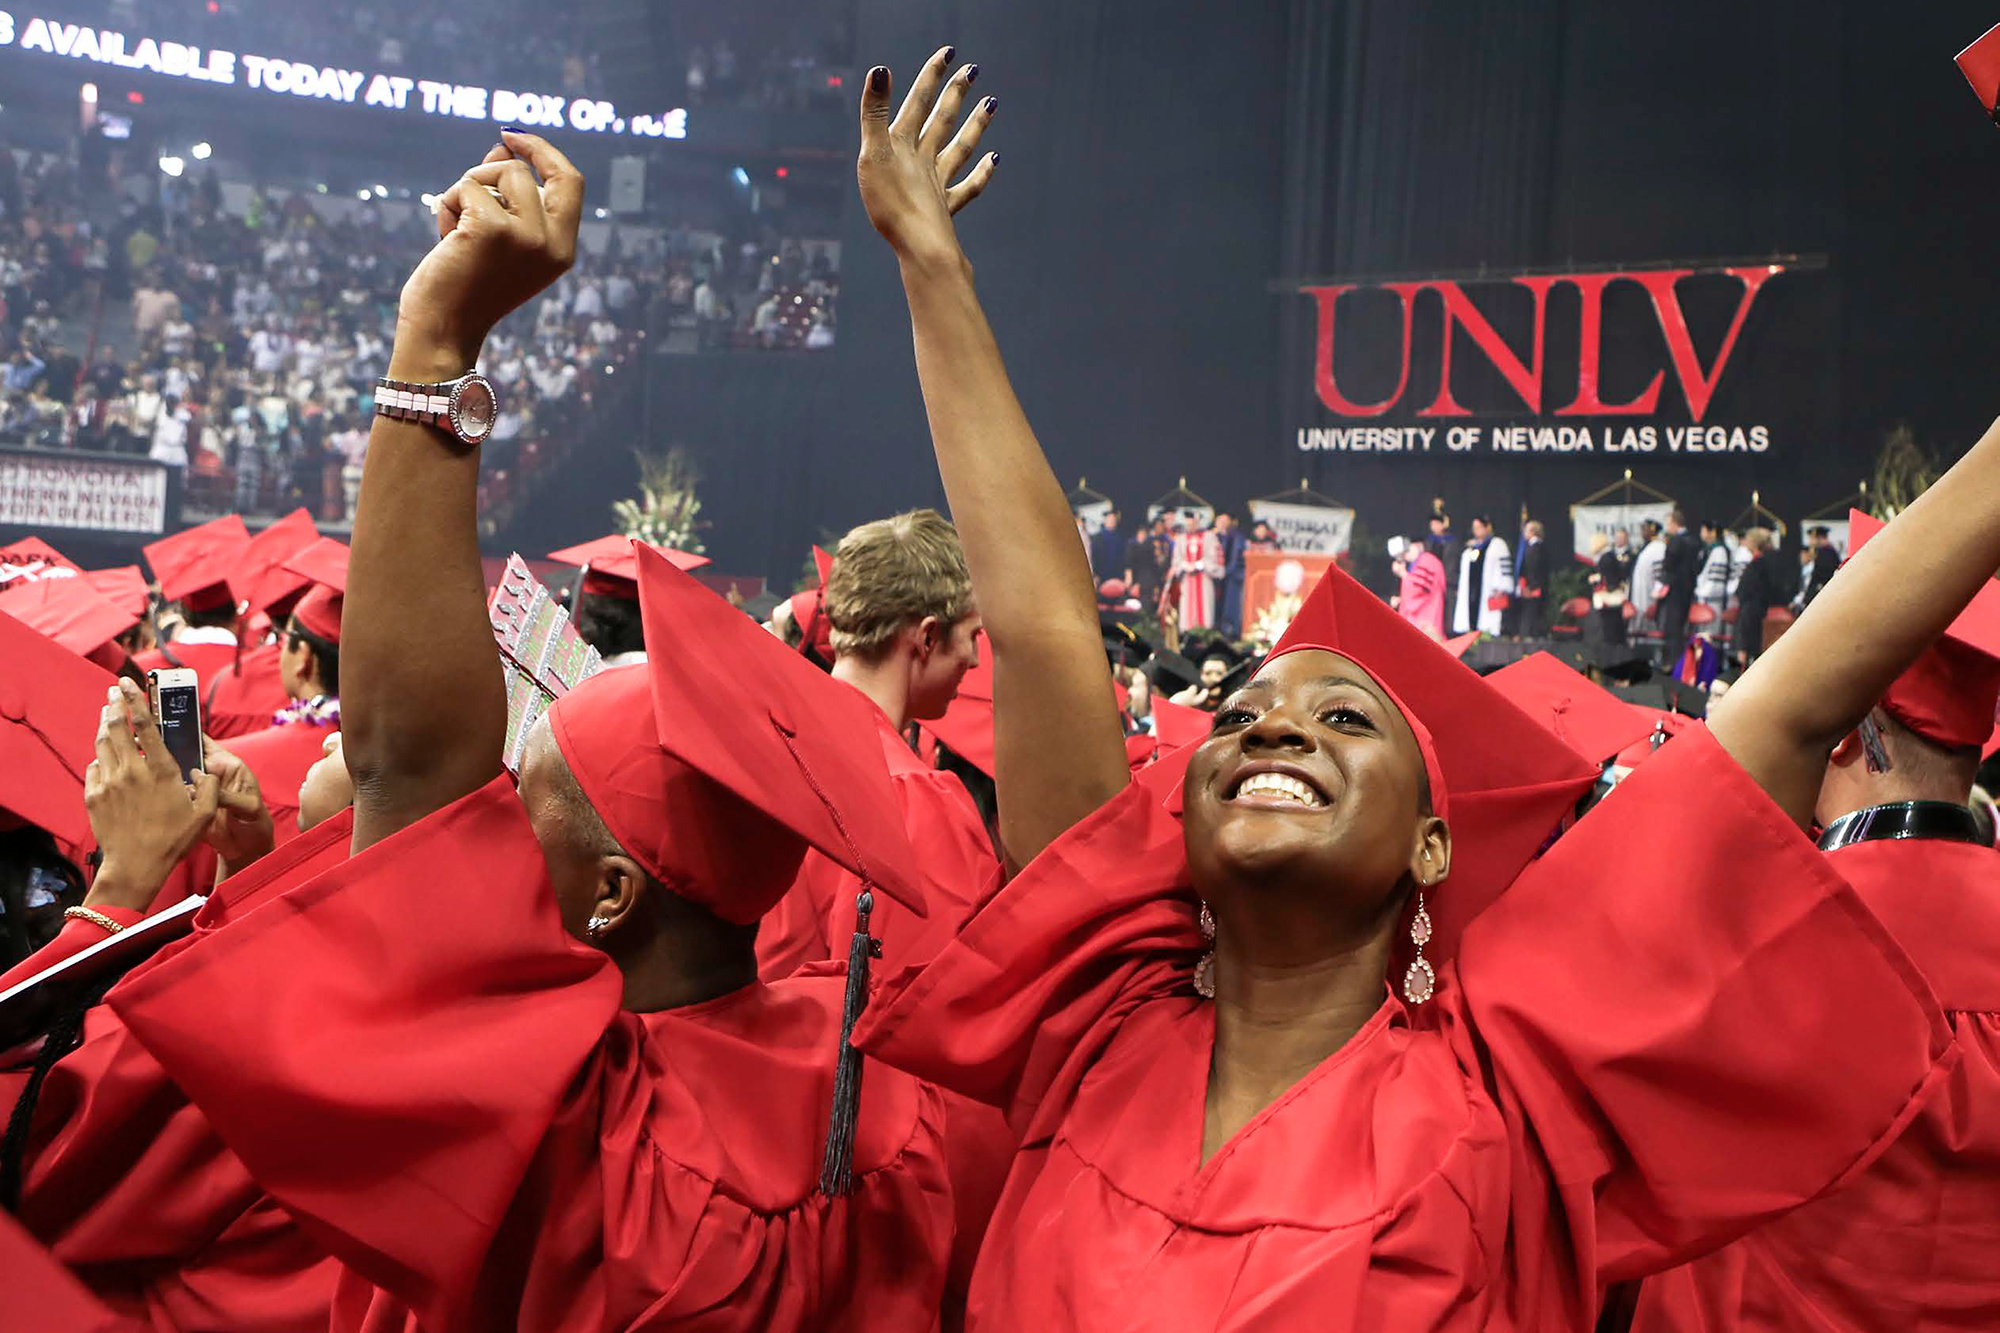 University Of Nevada Las Vegas Taco Wiring Diagrams Zone Boards Female Graduate Raises Her Hands Up In Celebration During Commencement